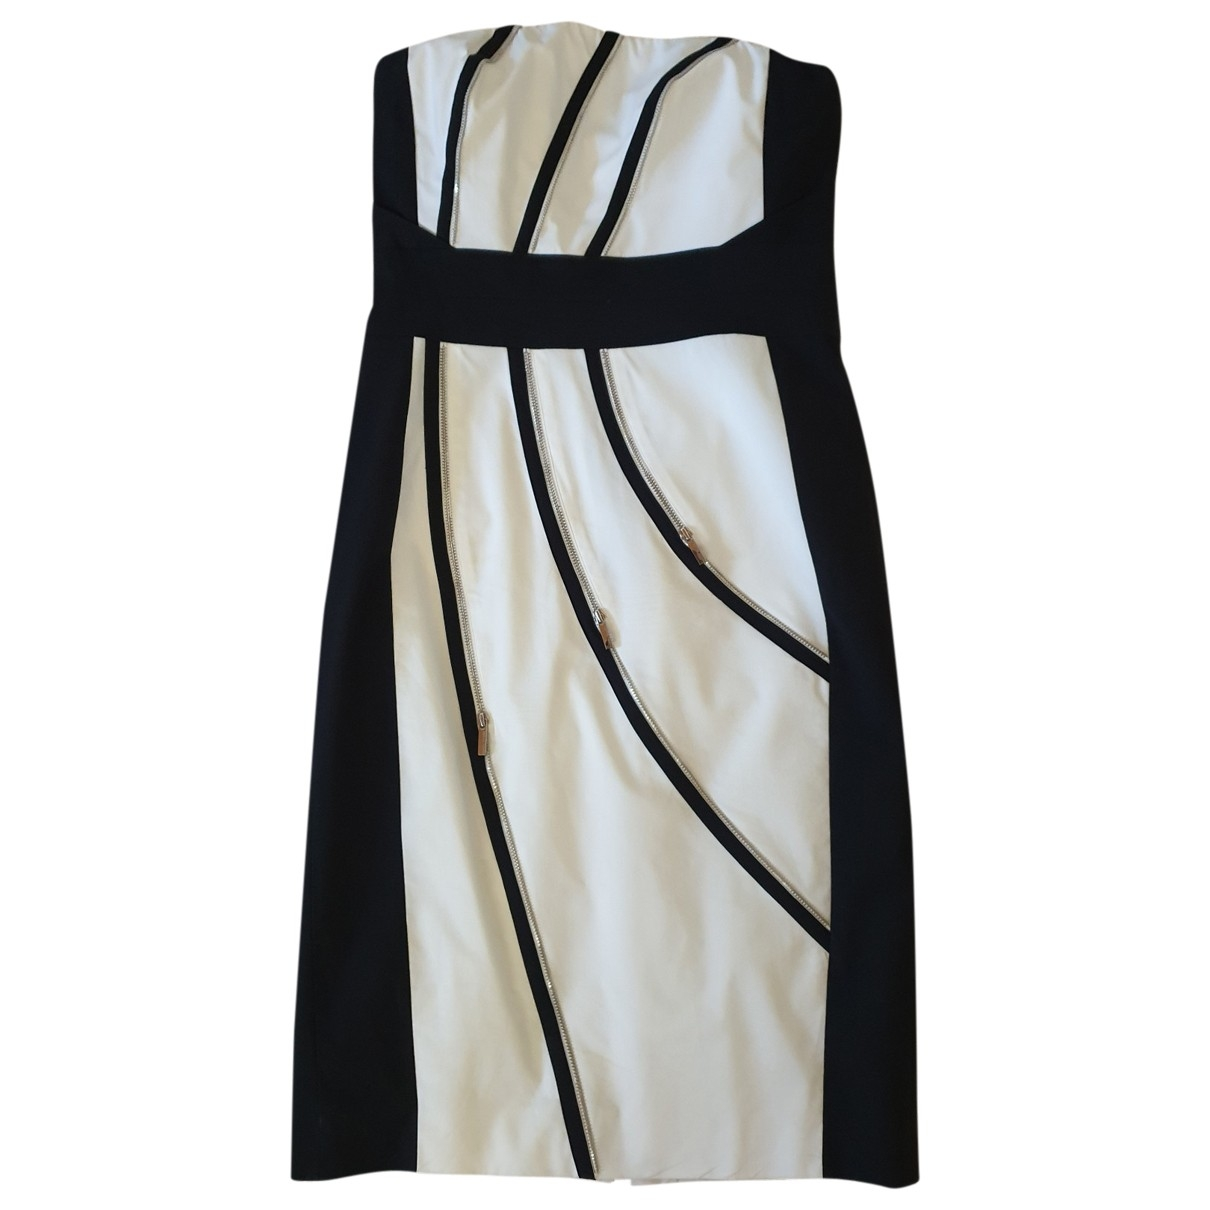 Karen Millen \N Cotton dress for Women 38 FR